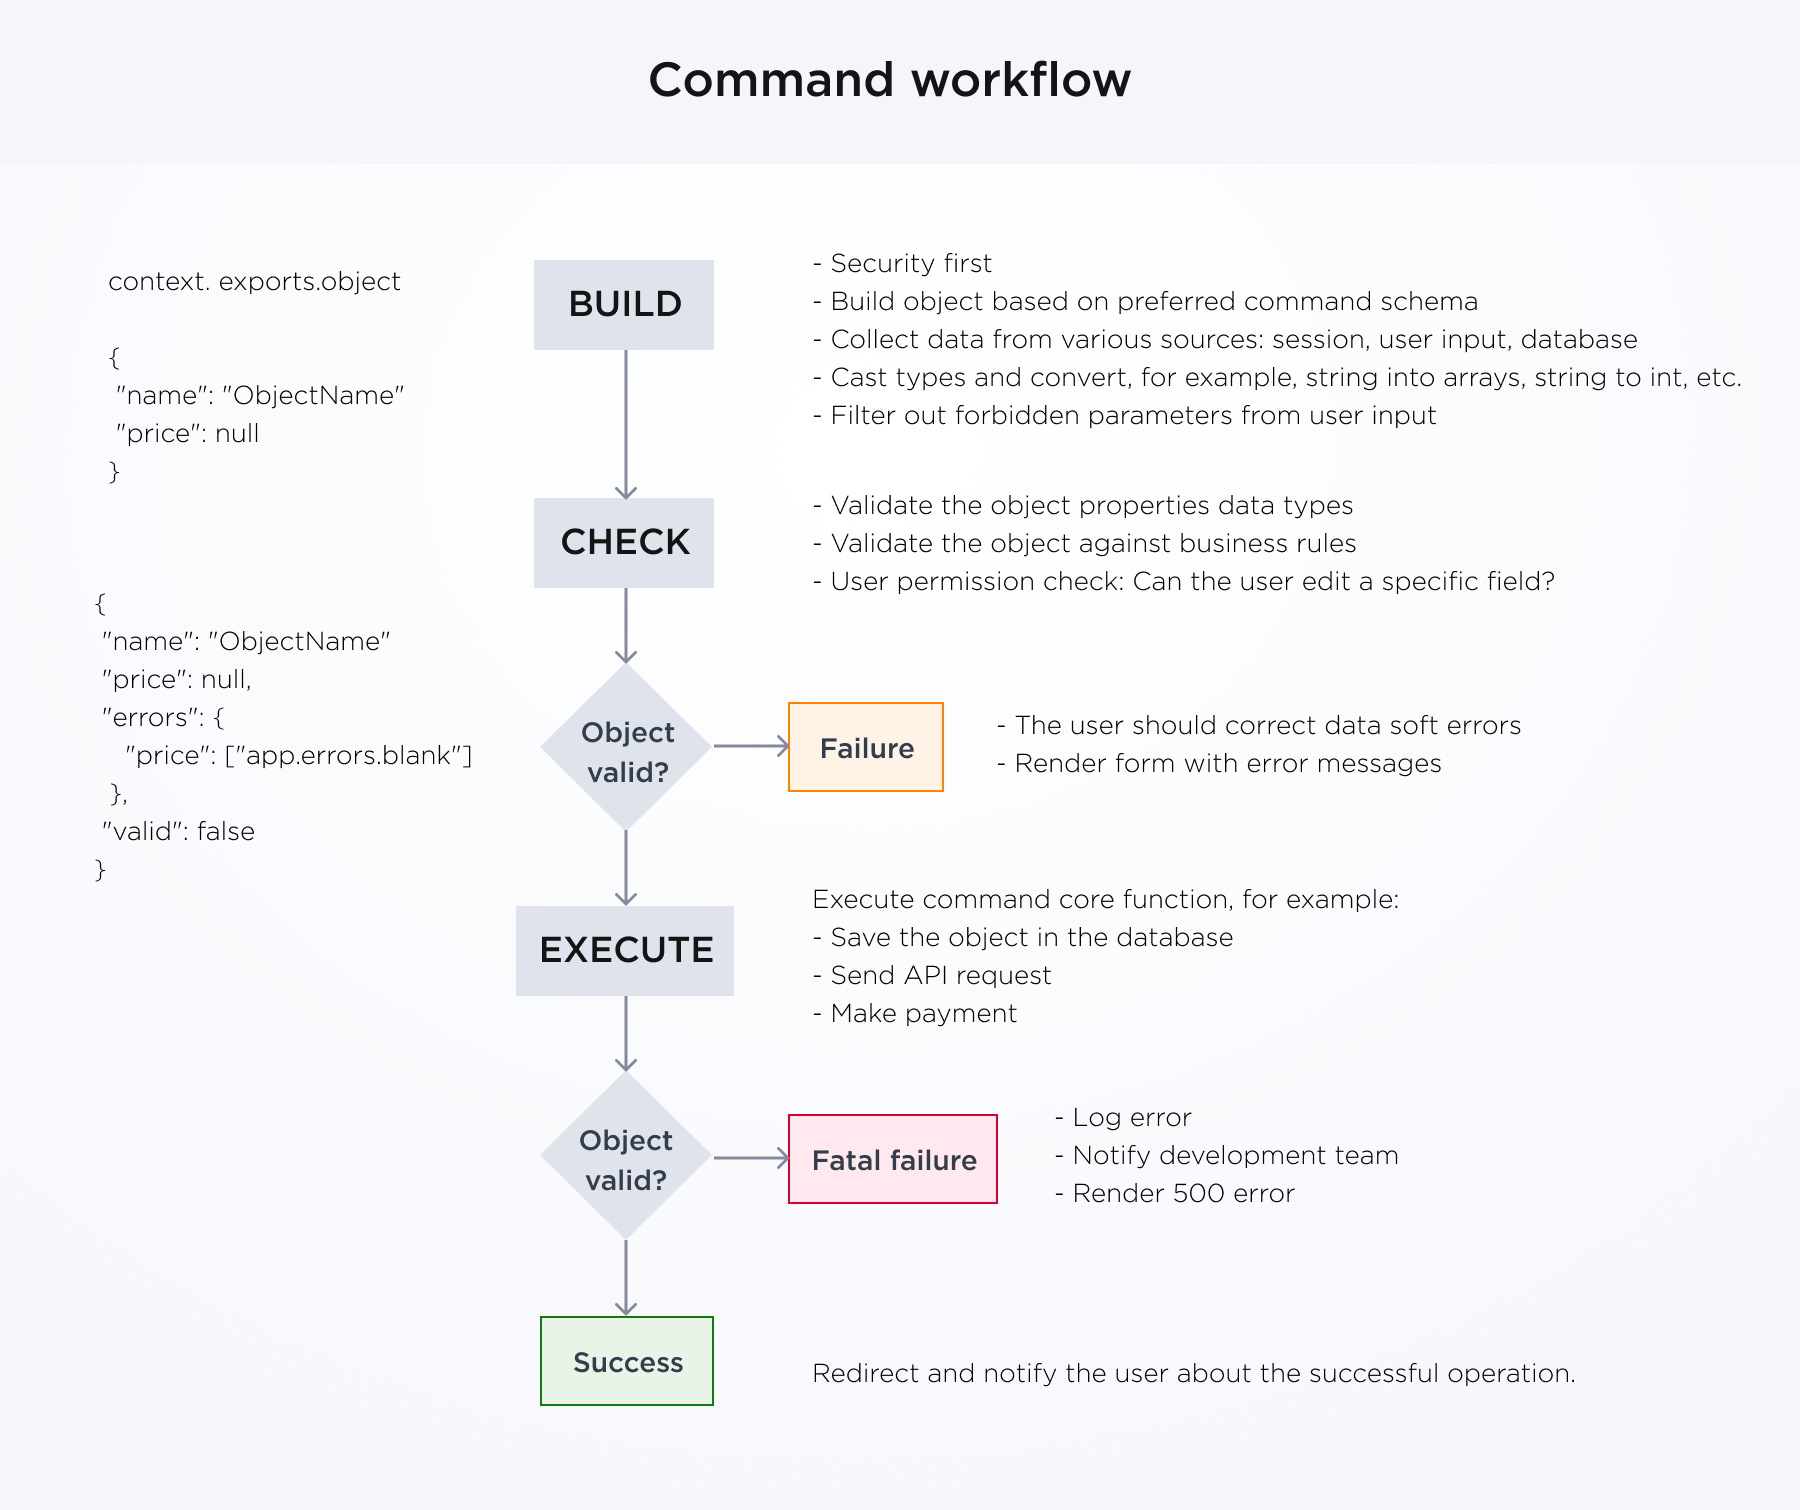 Process diagram of the command workflow - build, check, execute